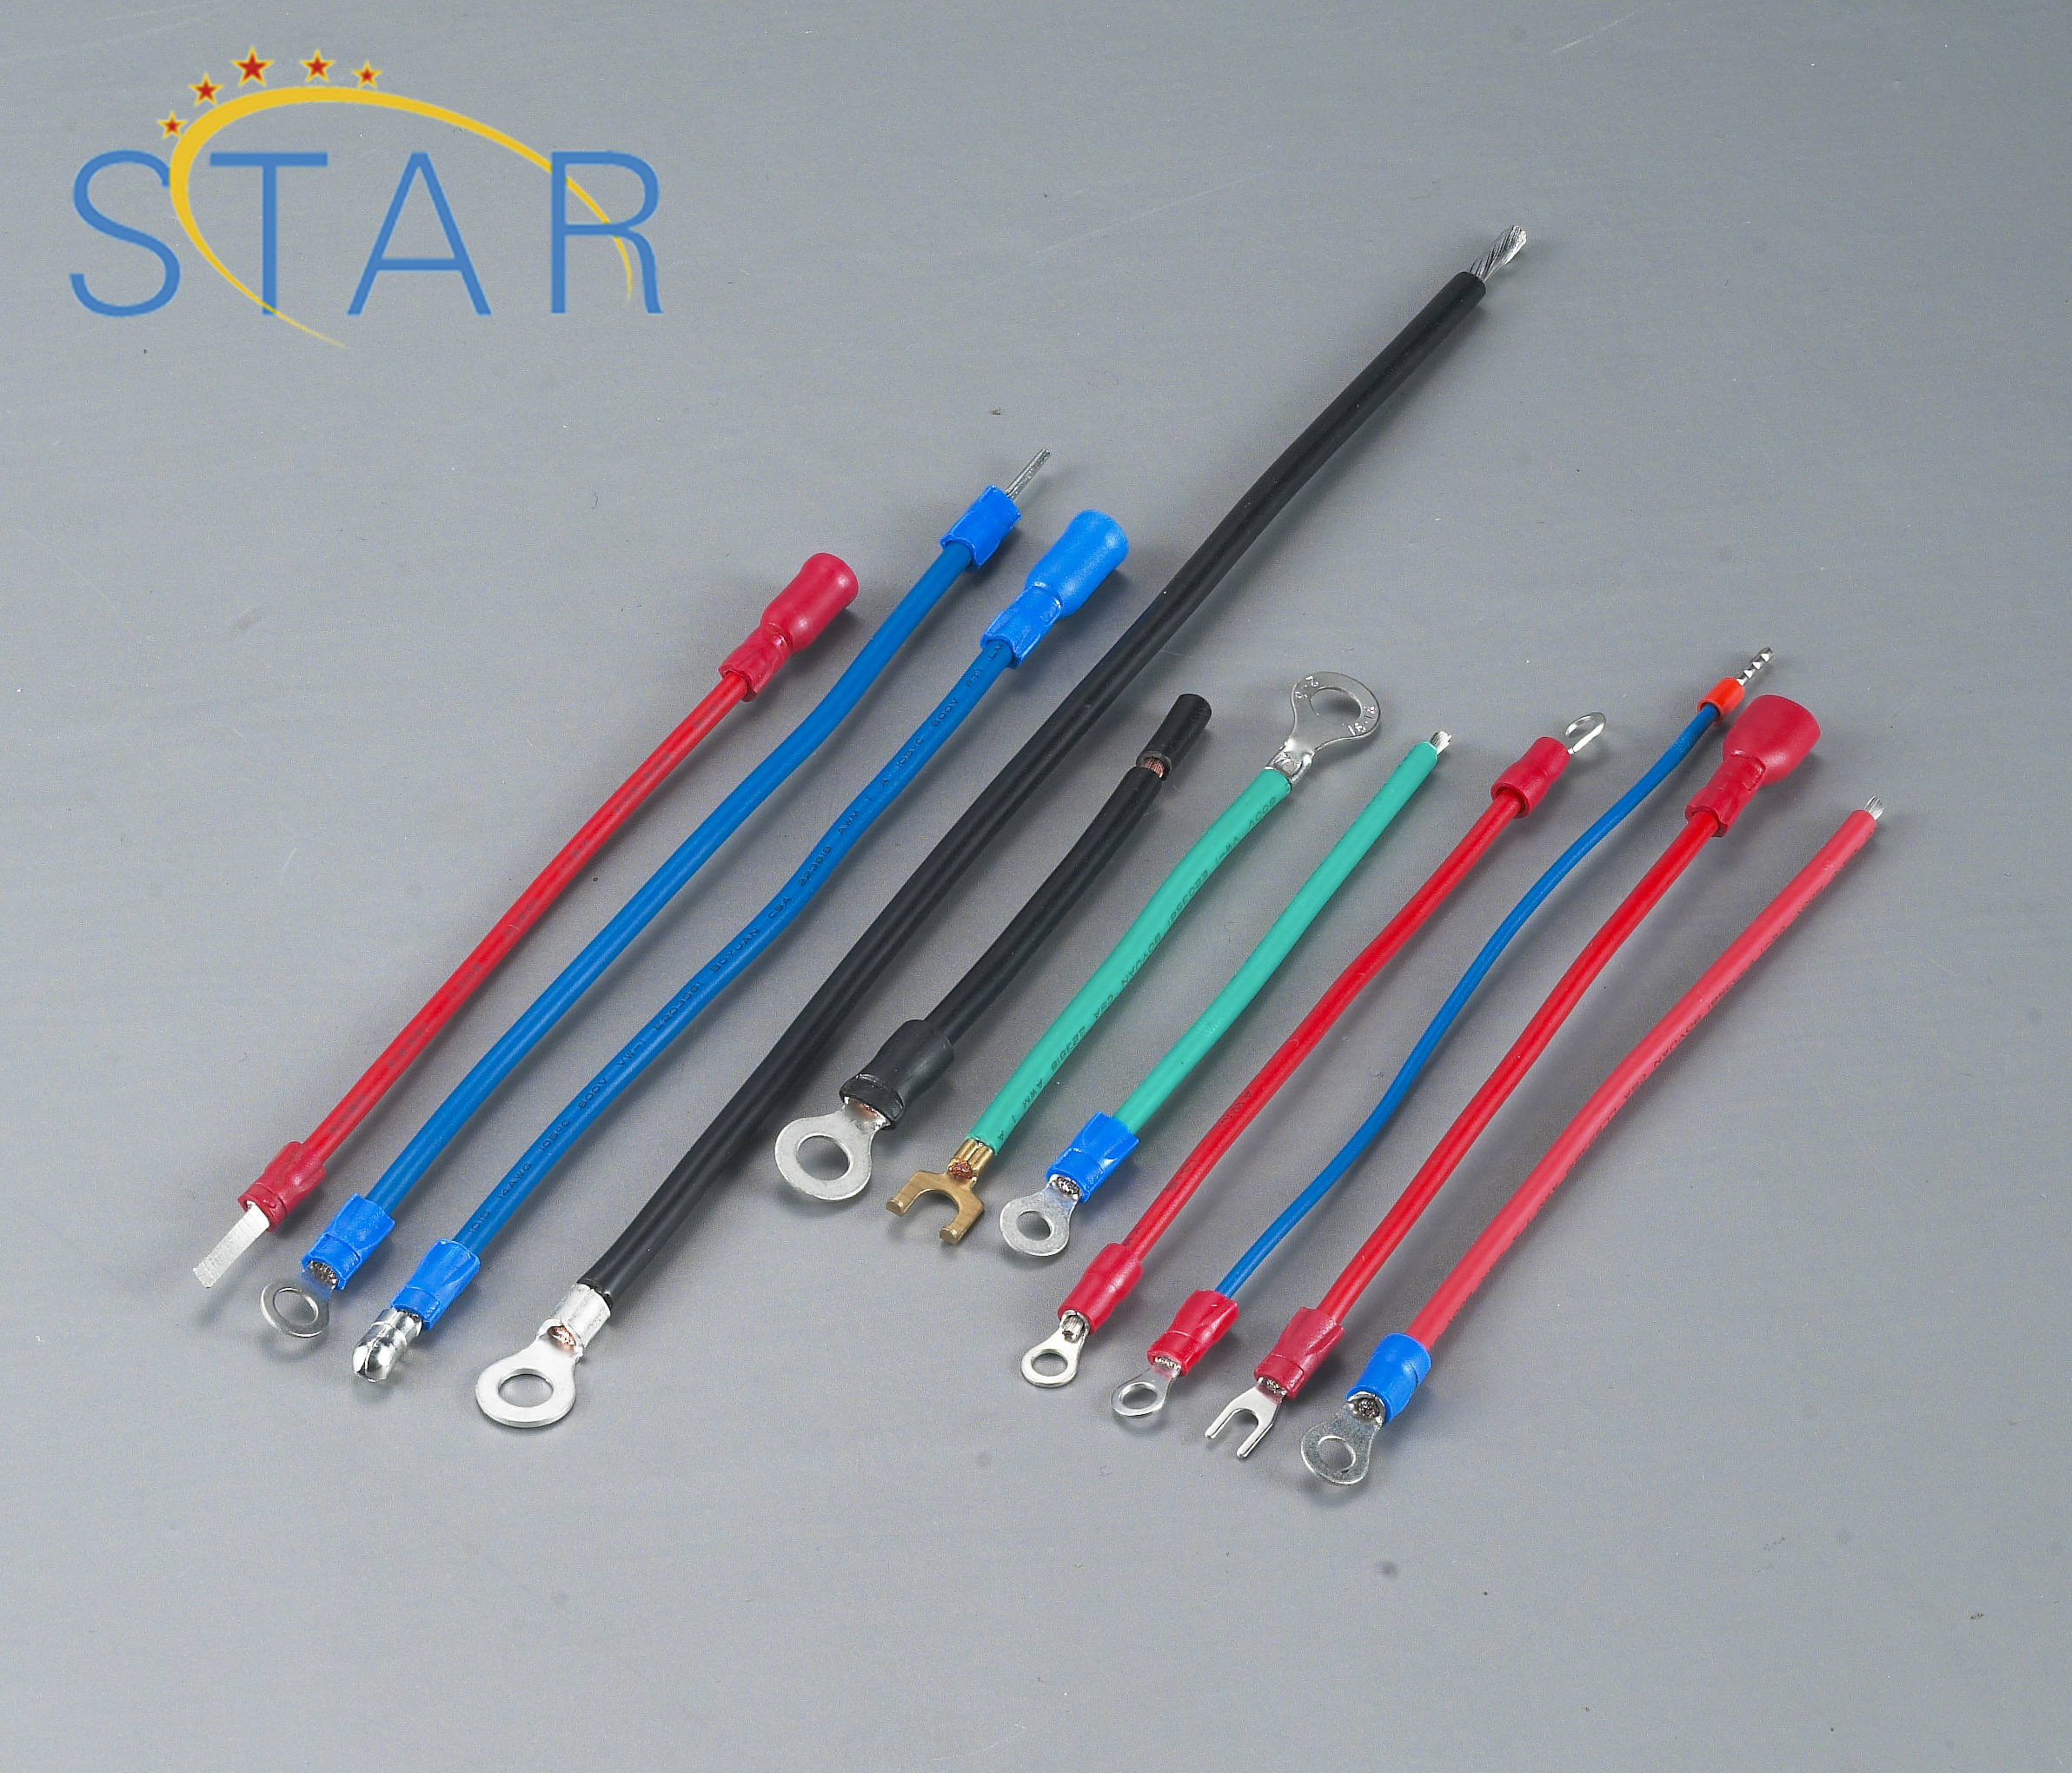 Terminal Lead Wire Wholesale, Lead Wire Suppliers - Alibaba